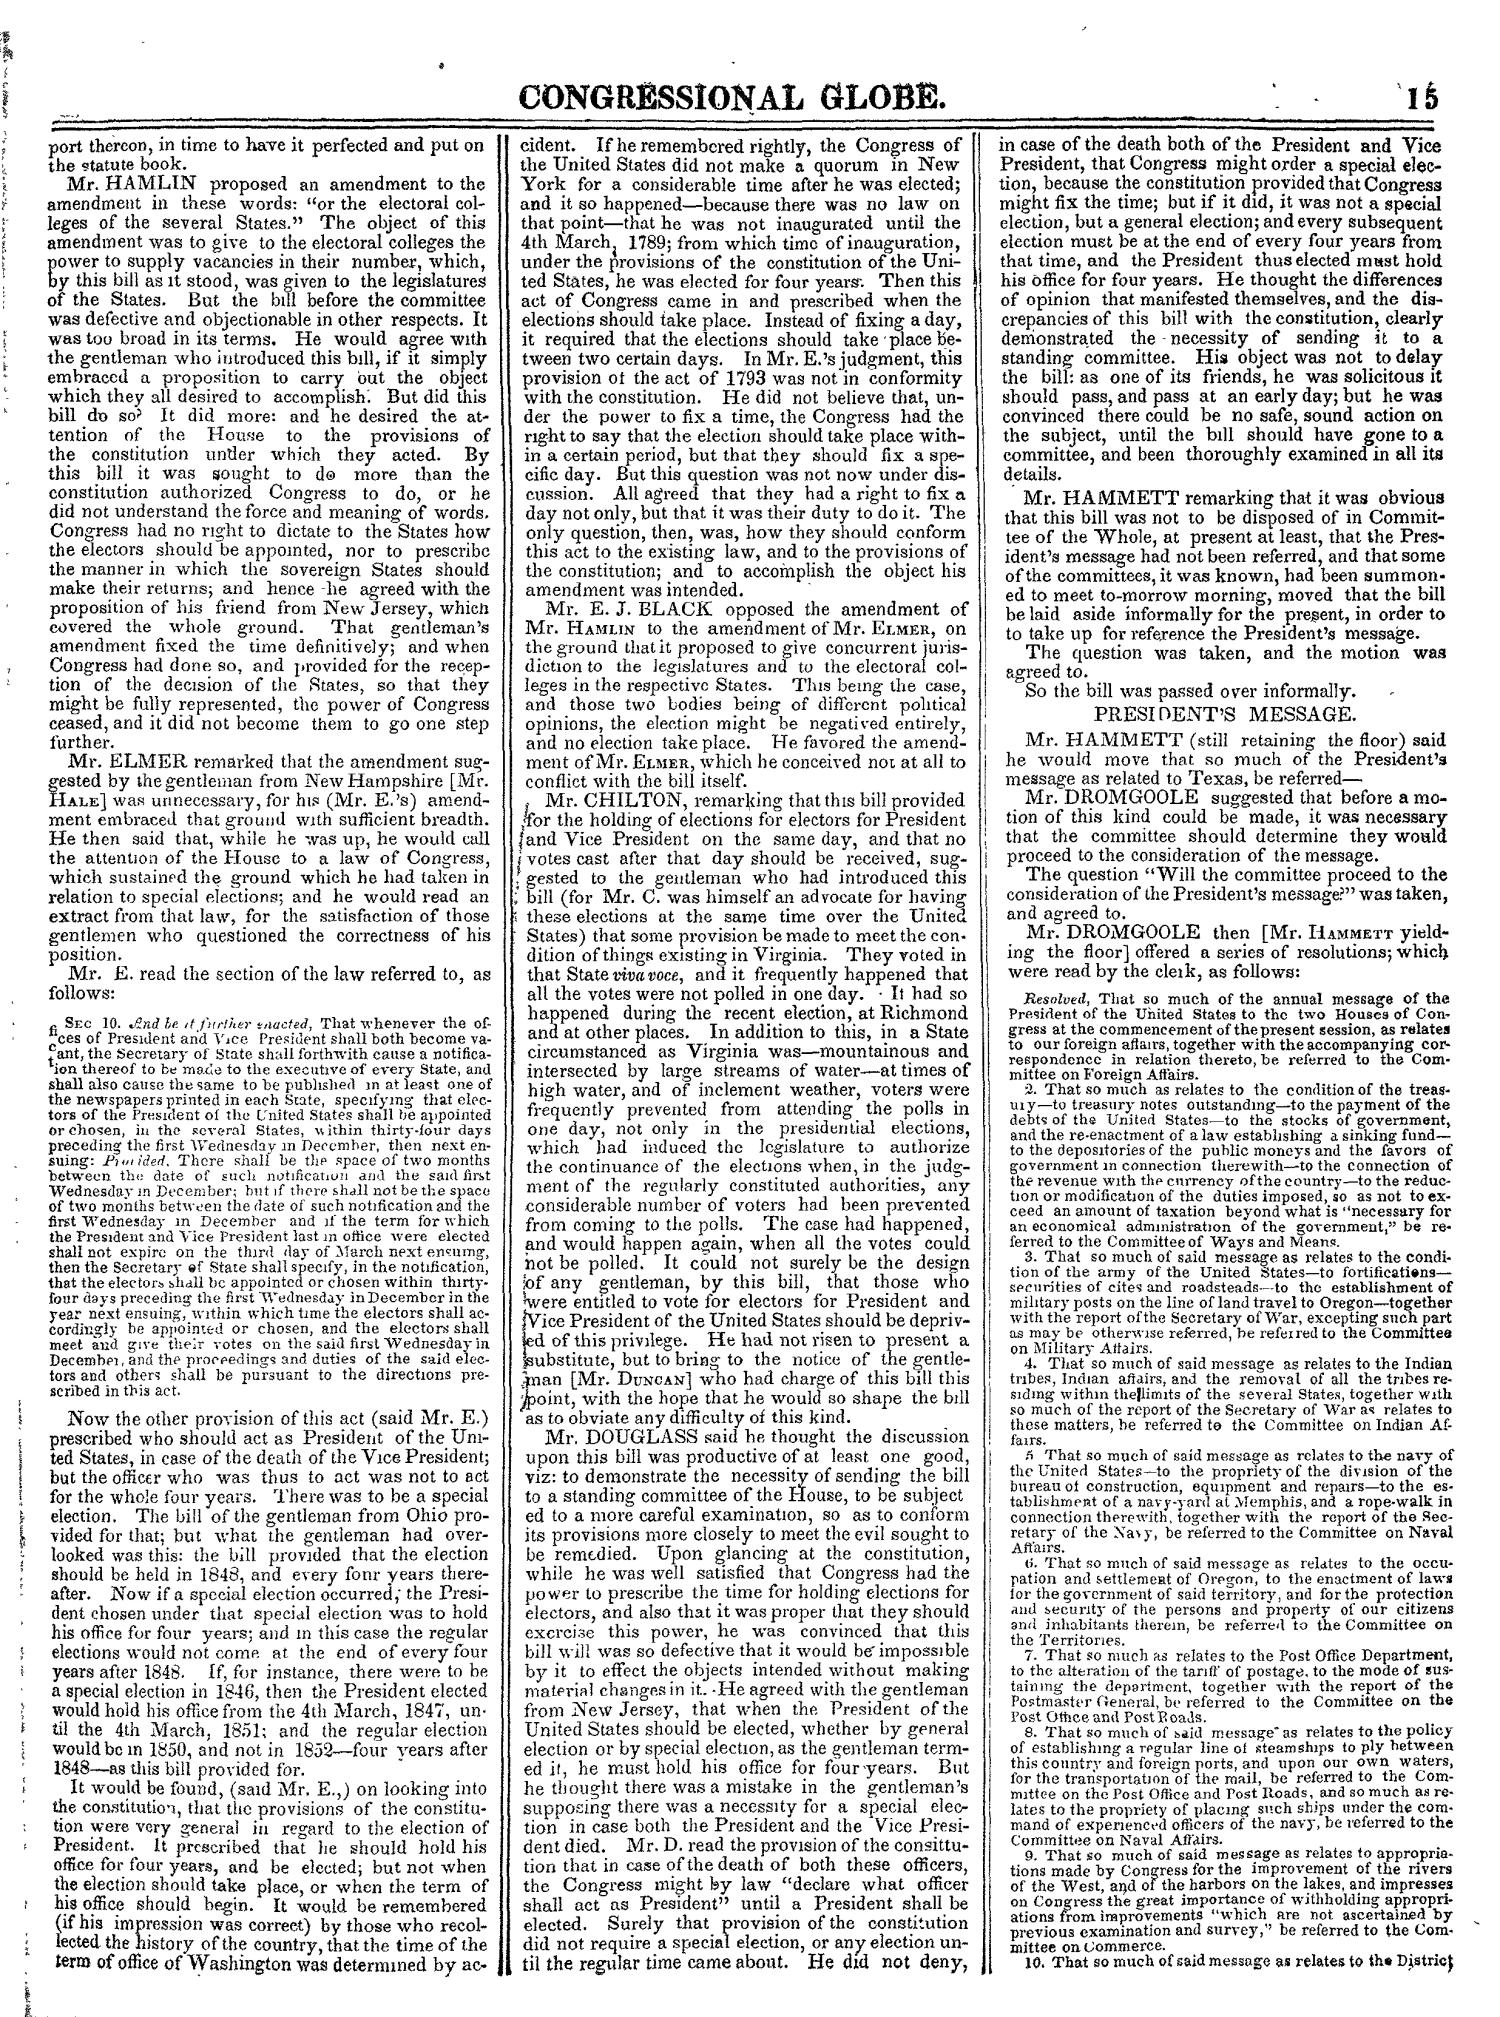 The Congressional Globe, Volume 14: Twenty-Eighth Congress, Second Session                                                                                                      15